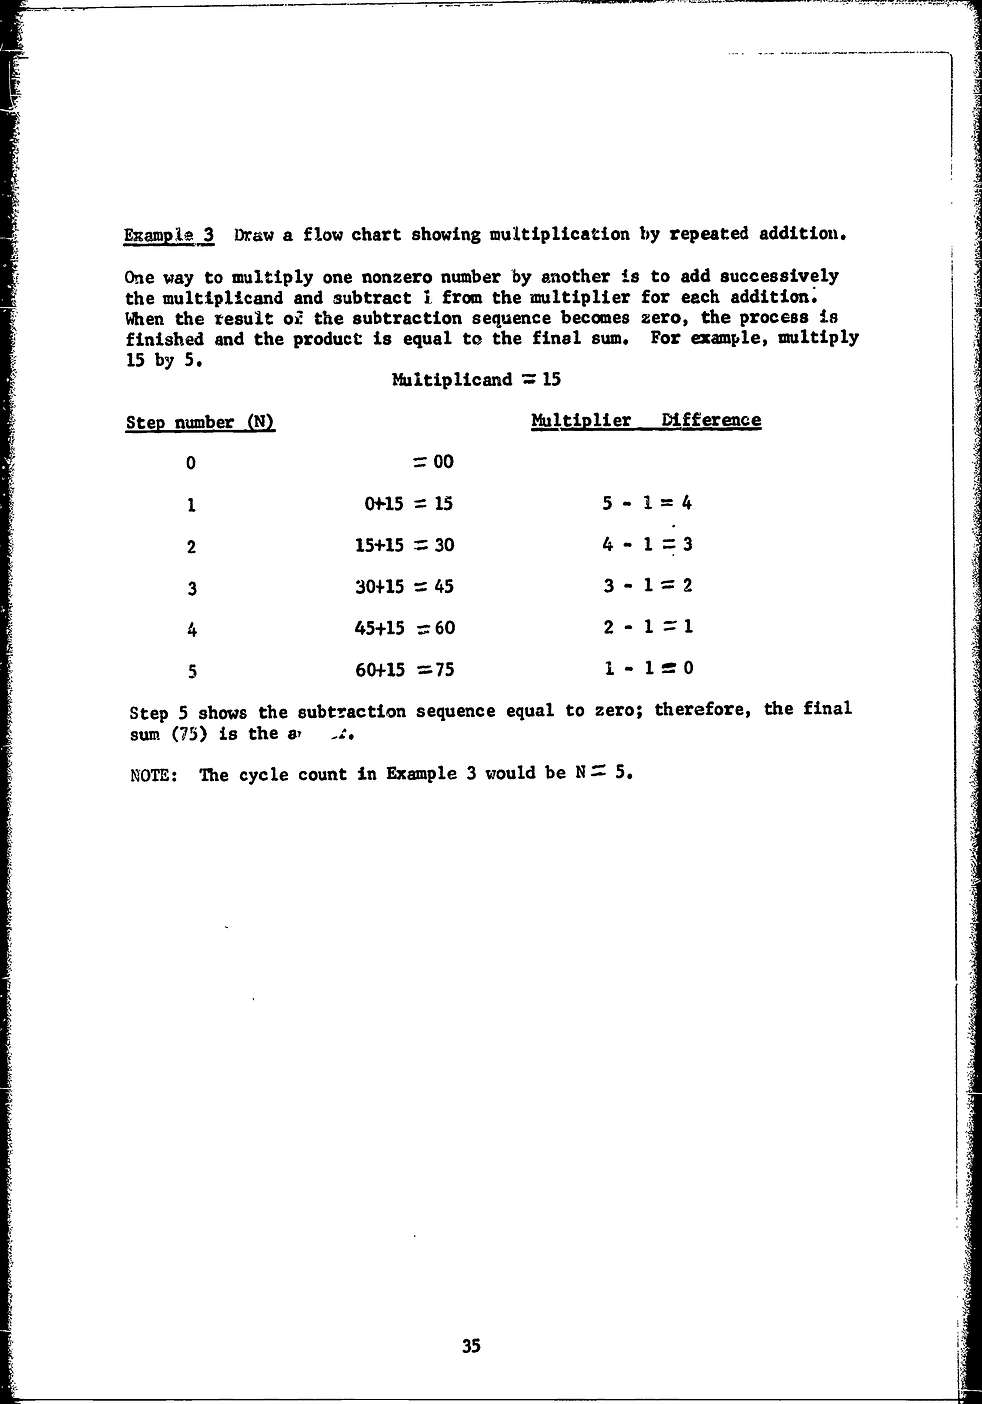 WYLE Instruction_Page_045_Image_0001.tif